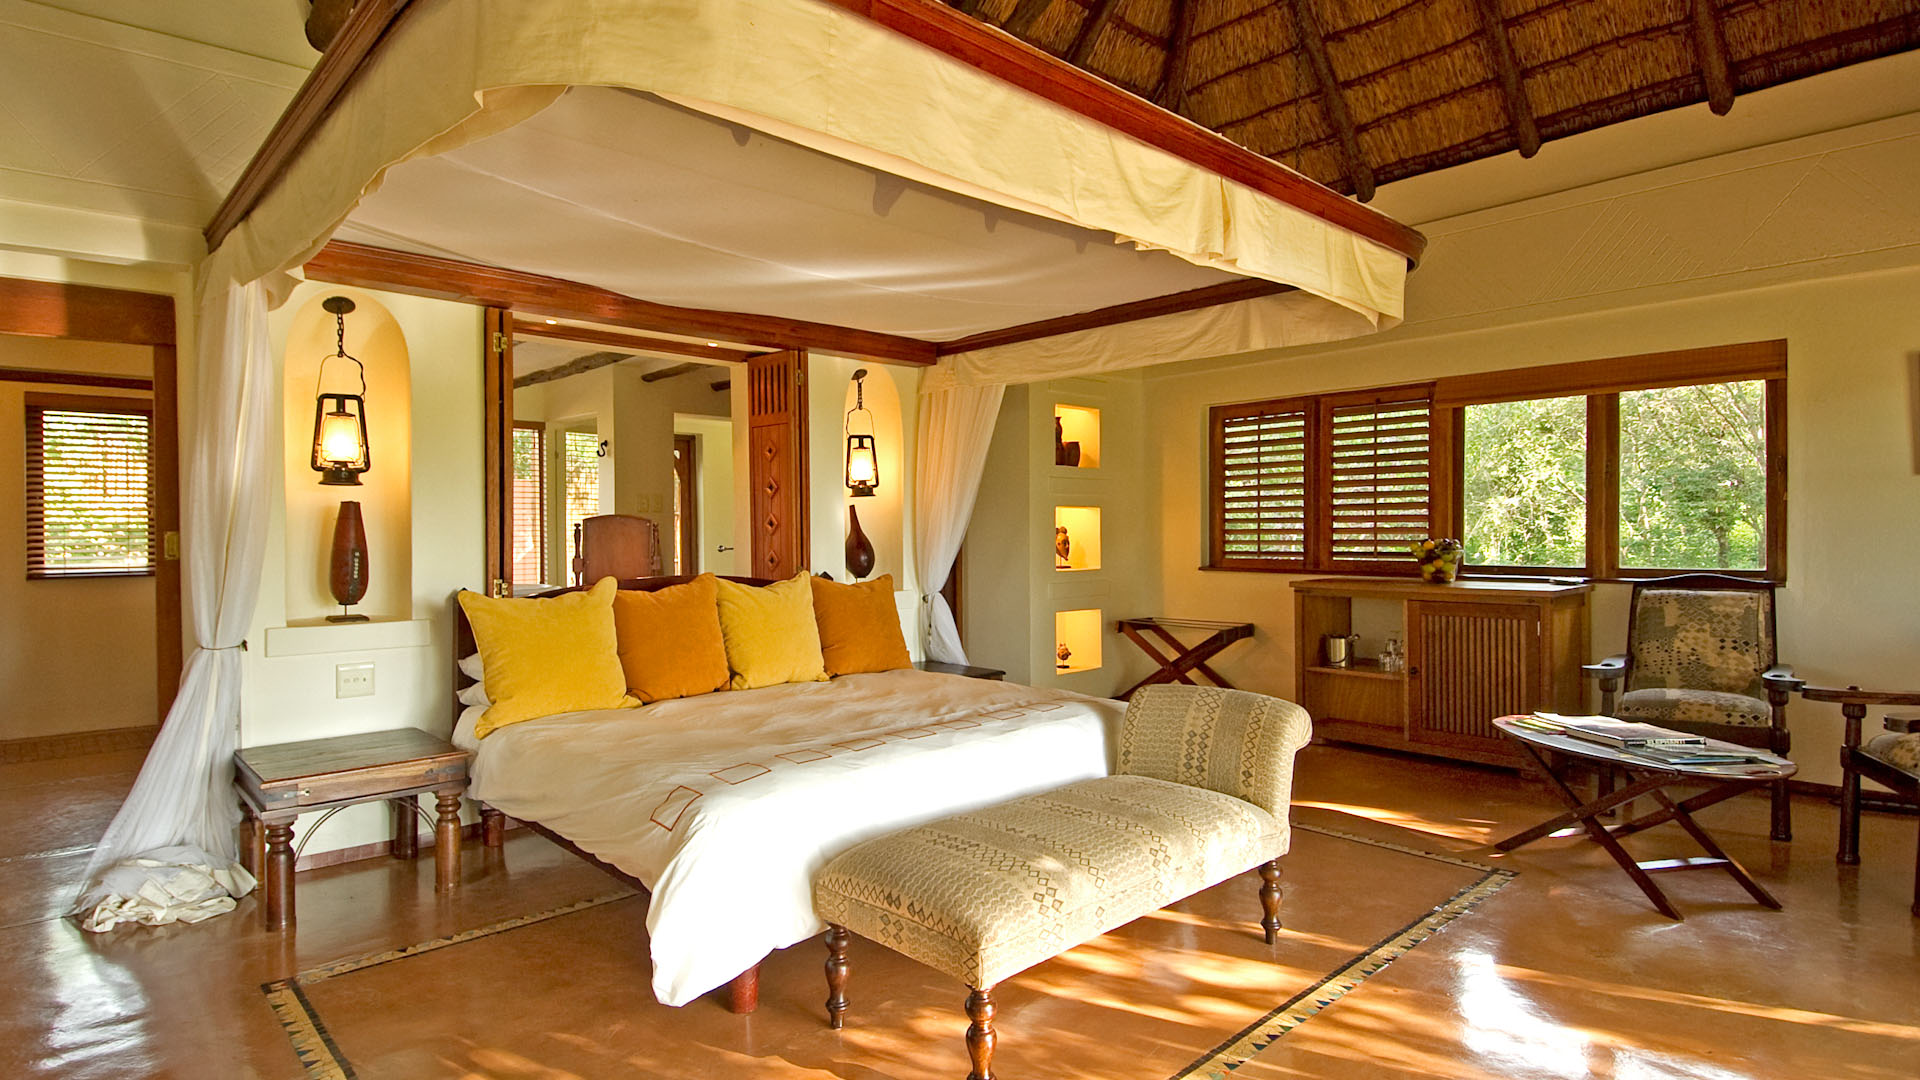 botswana-chobe-chilwero-lodge-chobe-national-park-bedroom-interior-sanctuary-retreats